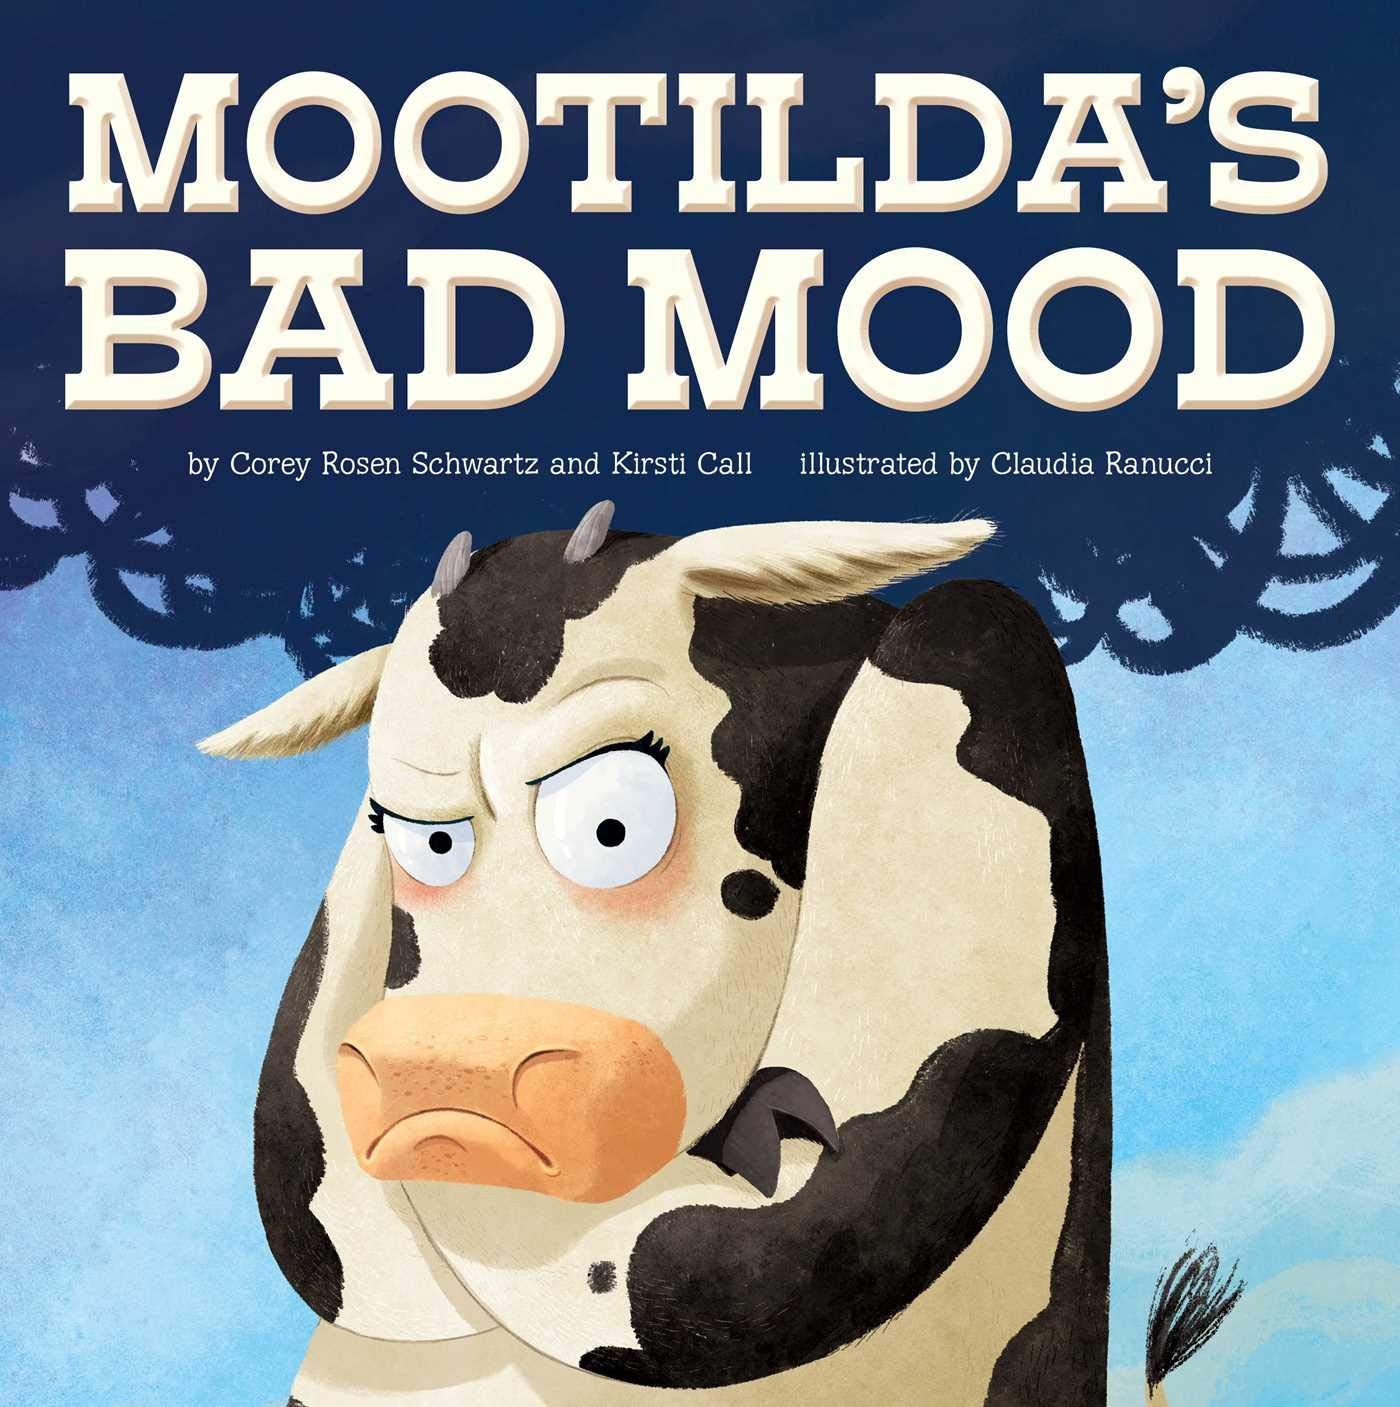 celebrate-picture-books-picture-book-review-mootilda's-bad-mood-cover